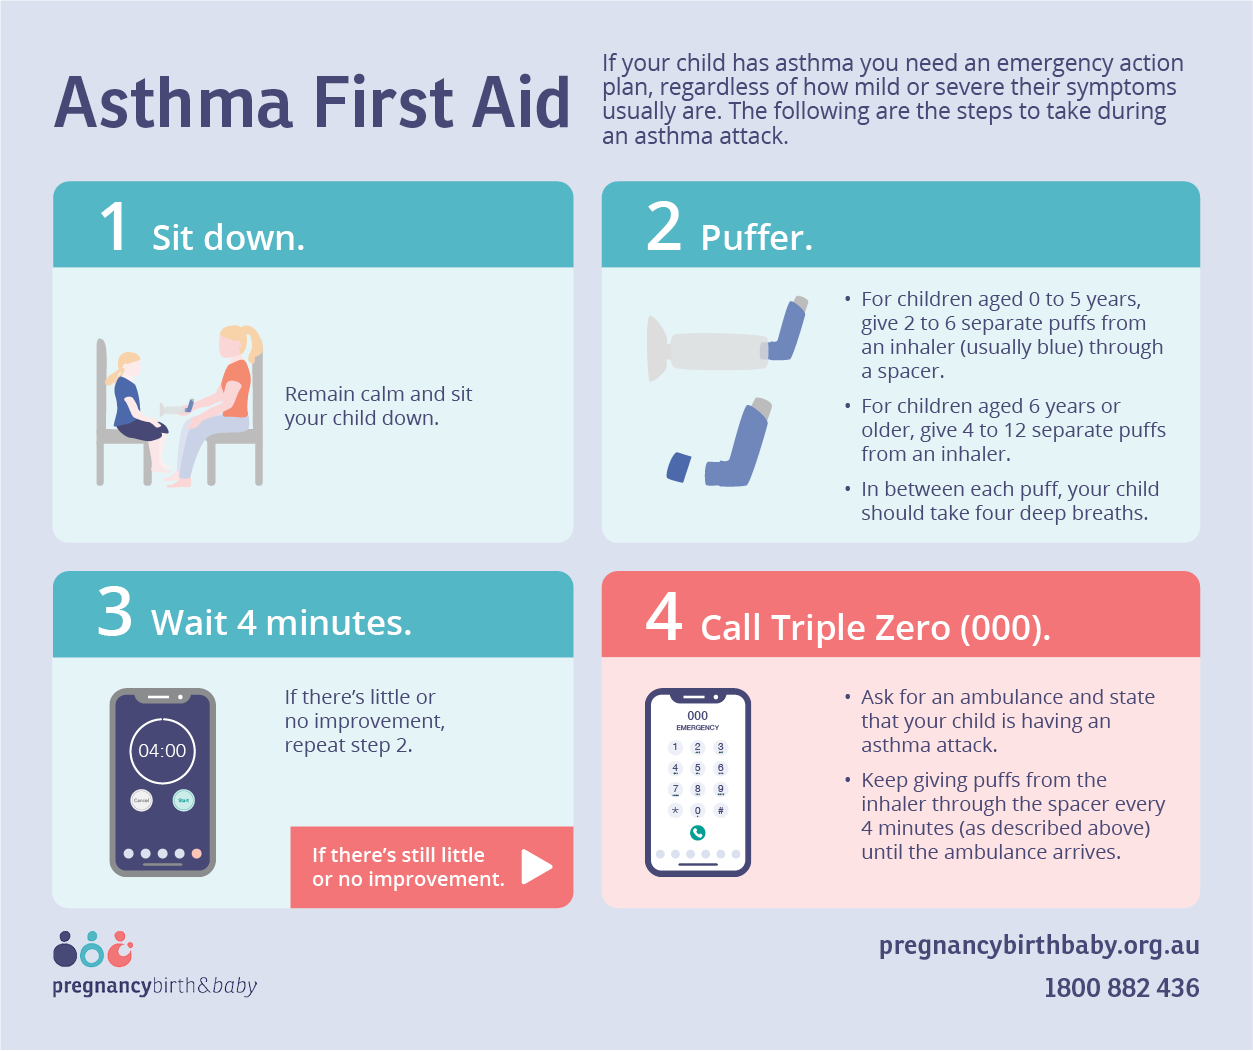 Asthma first aid guide - infographic